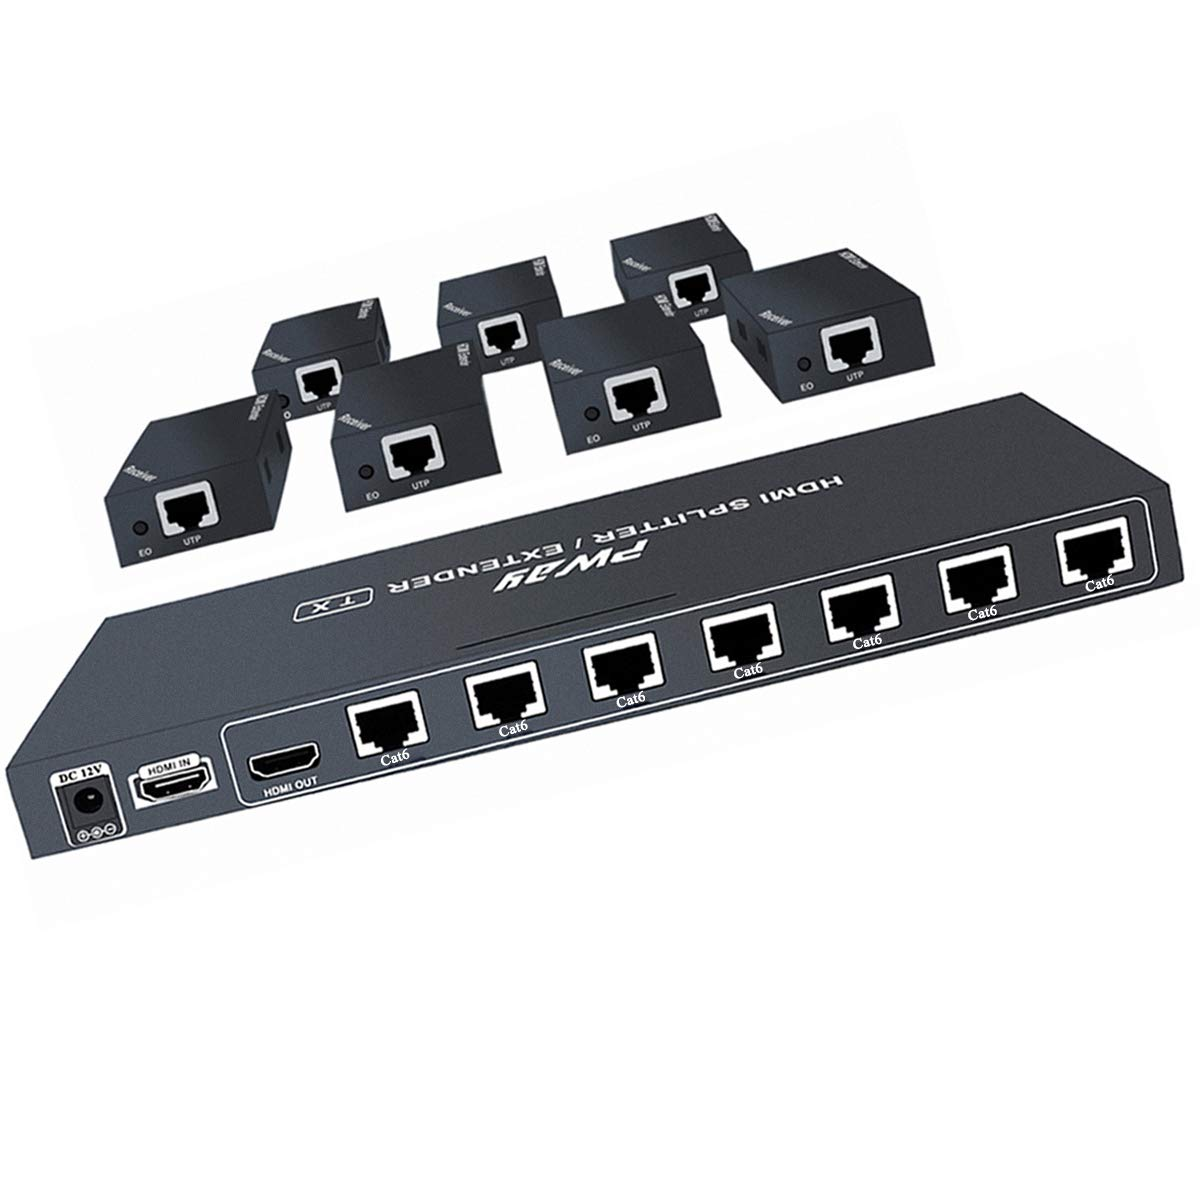 AAO HDMI Extender Splitter 1x8, Support UHD 1080P@60Hz & 3D Visual, 7 Channel Transmit 165ft (50m) Over CAT5e/CAT6/CAT7, with HDMI Loop Out.